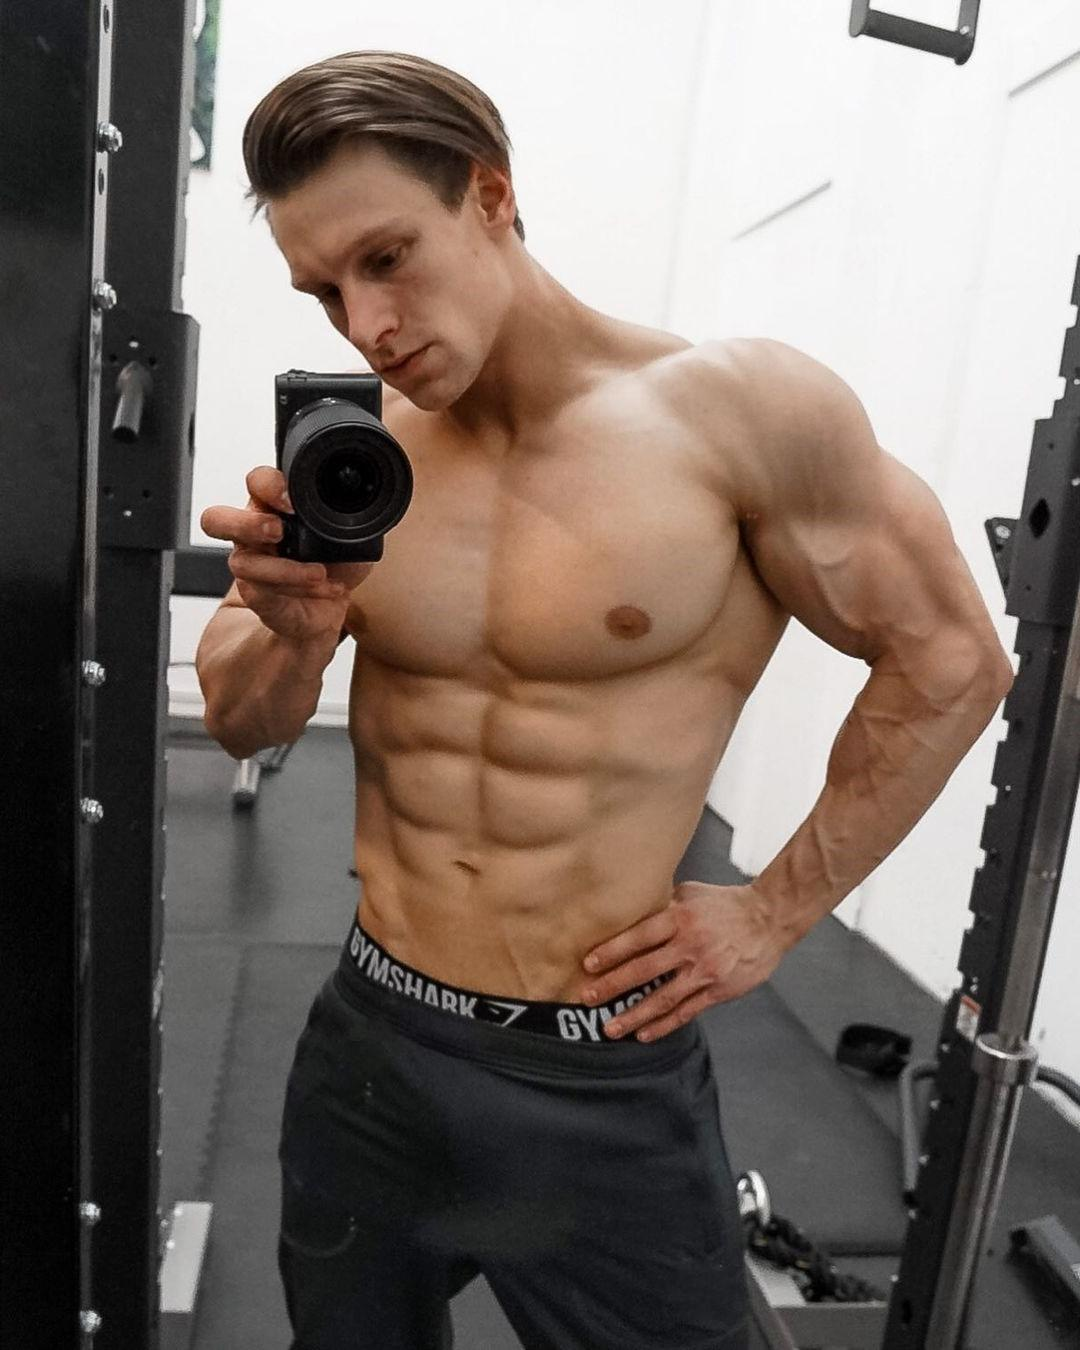 young-gym-hunks-steve-kris-muscular-hipsters-gel-hairstyle-luxurious-men-selfie-sixpack-abs-pecs-veiny-arms